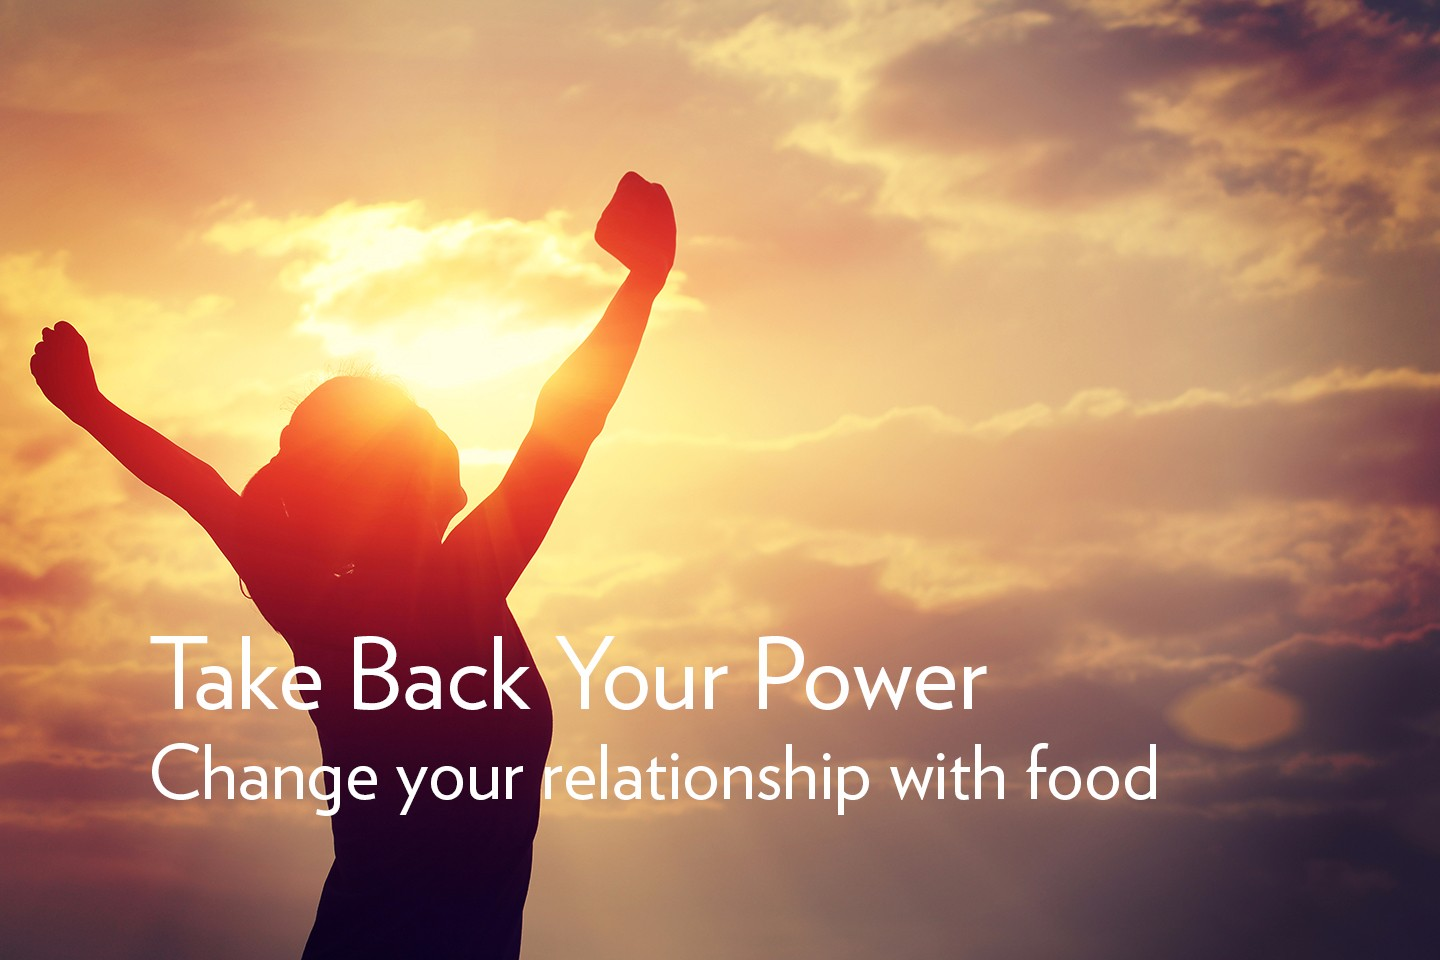 Taking back your power in a relationship